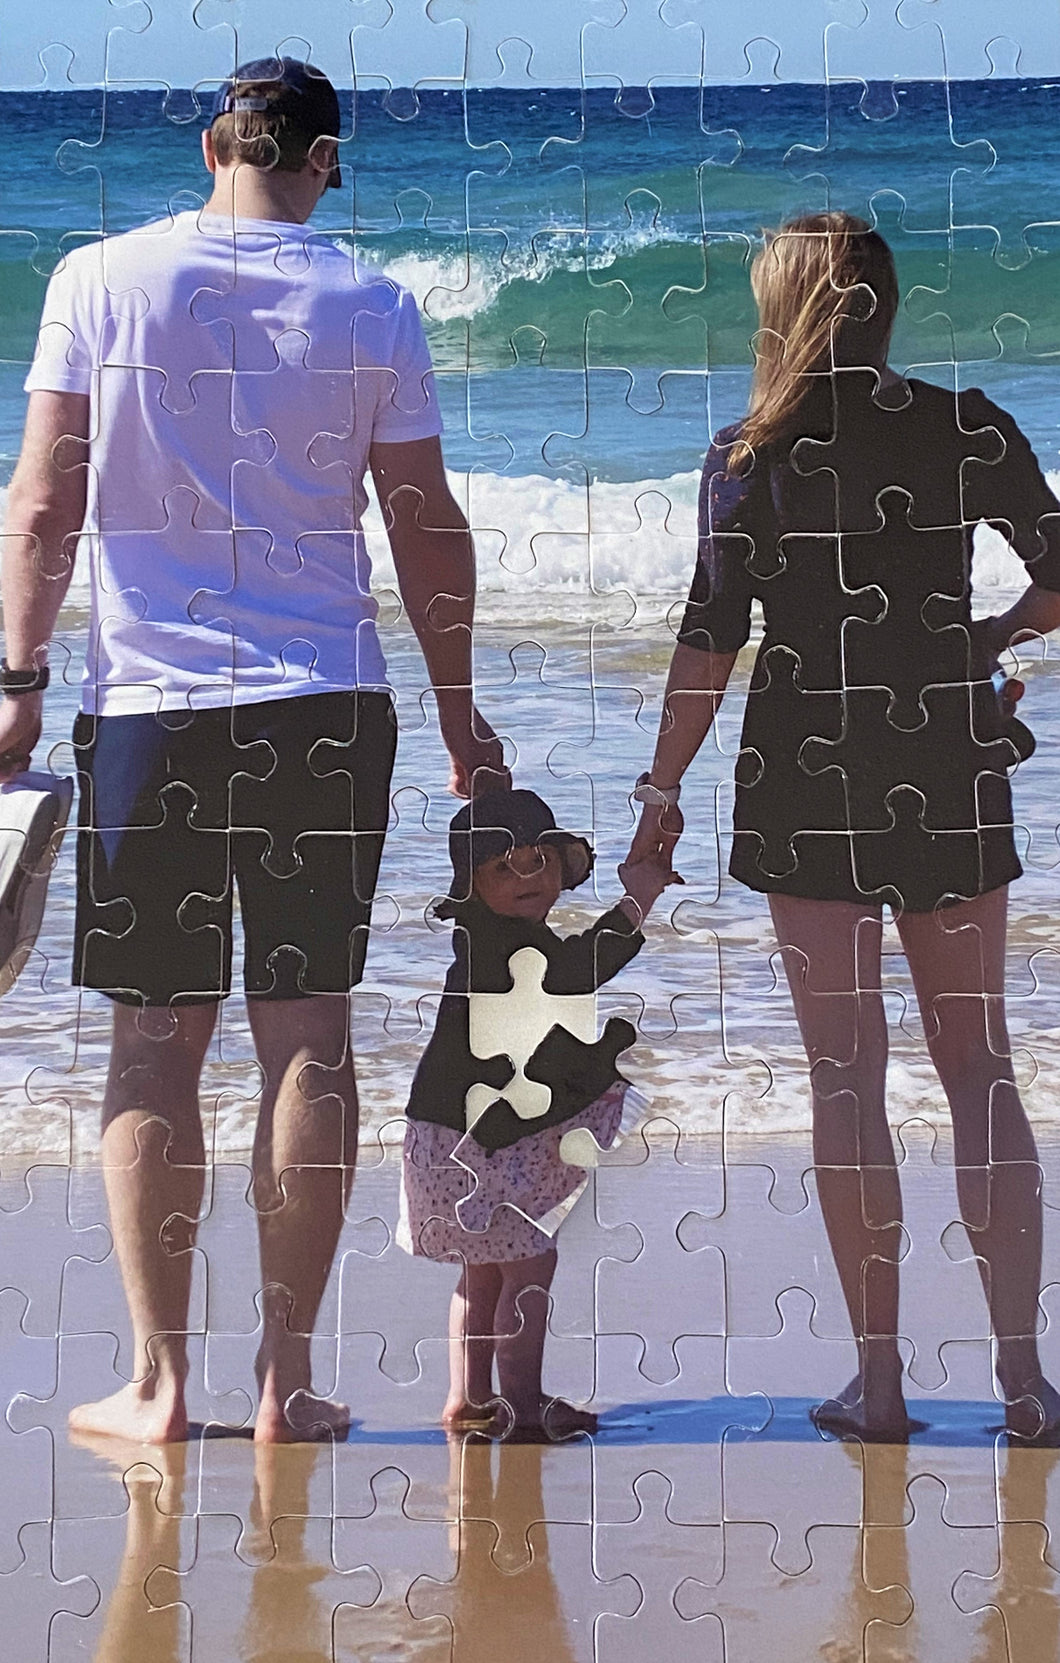 8.5x11 Custom Photo Puzzle - 48 pieces